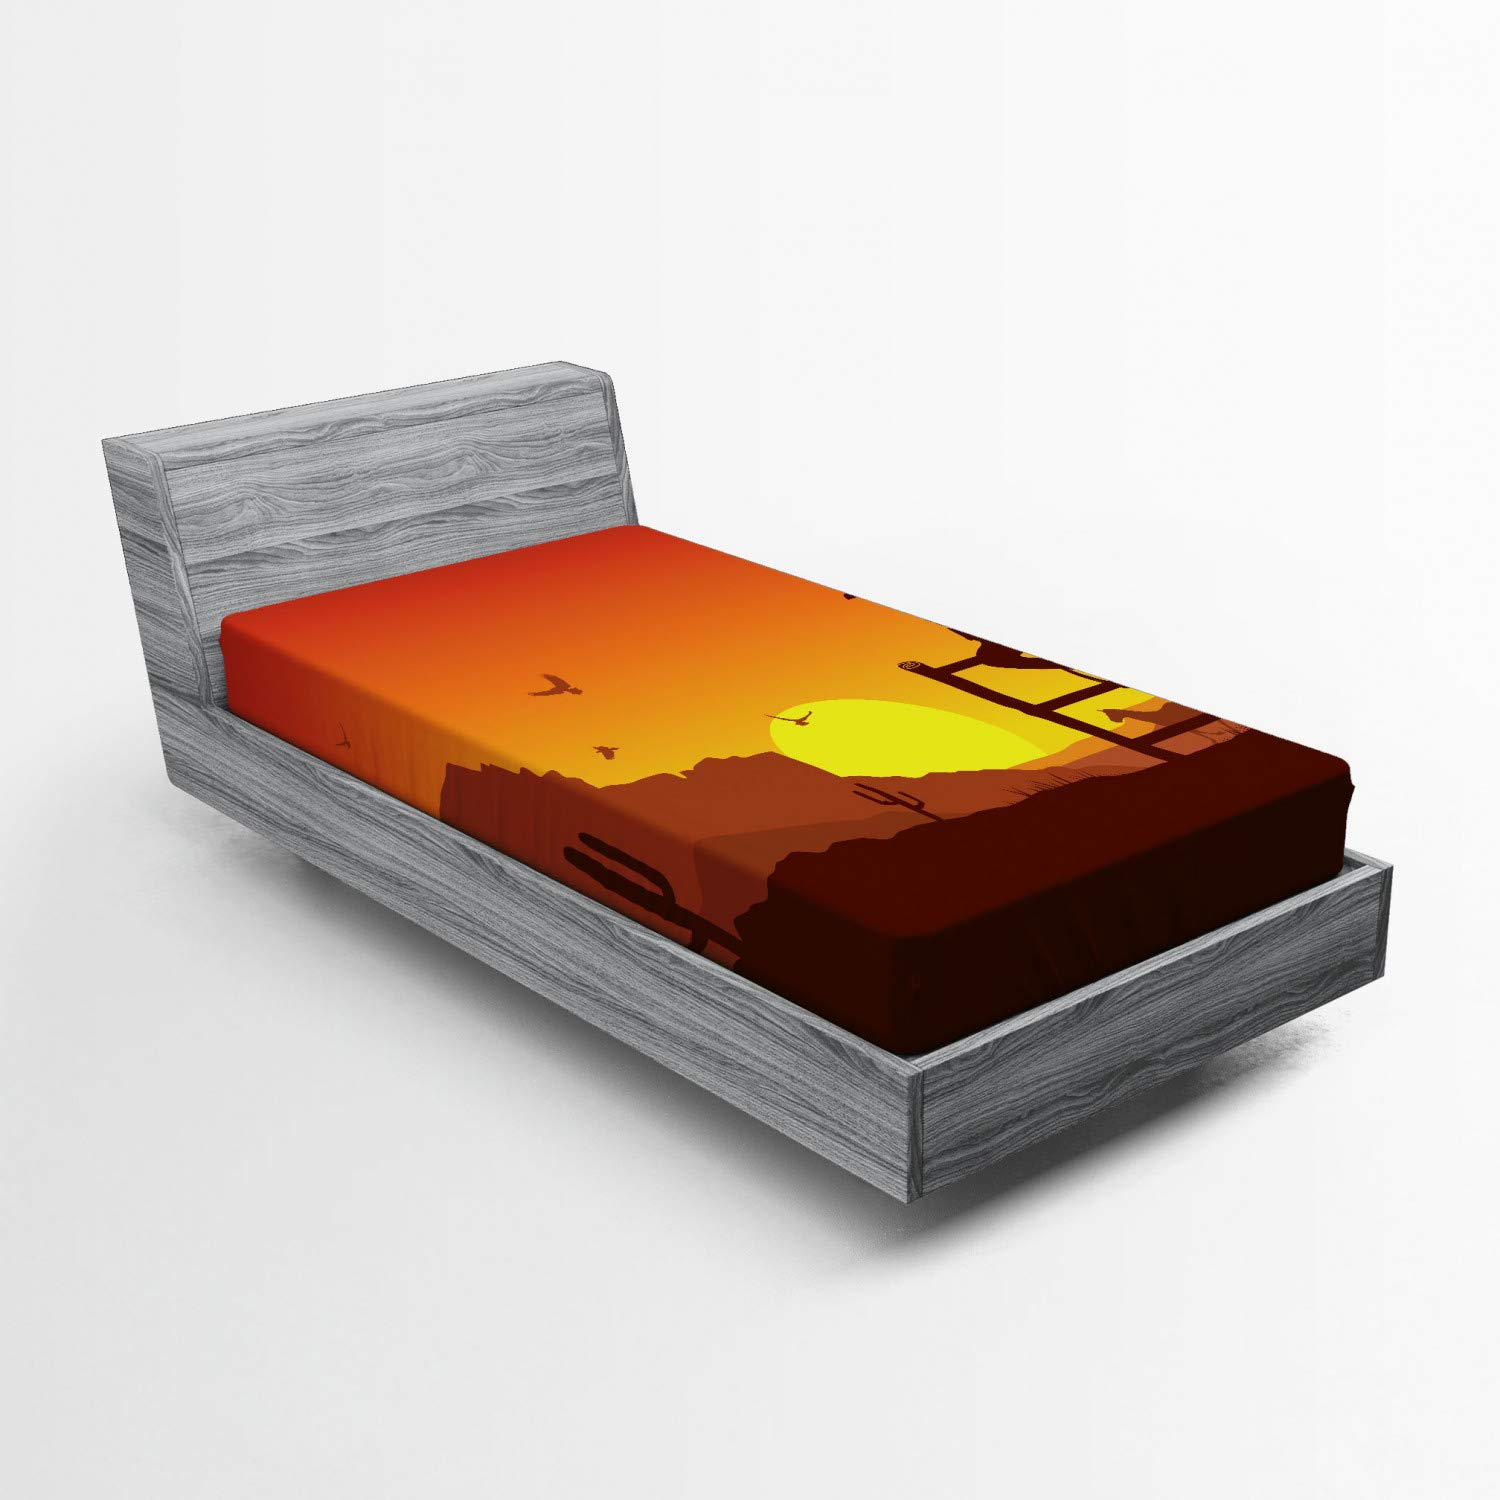 Ambesonne Western Fitted Sheet, Silhouette of Cowboy in Wild West Sunset Scene American Culture Image Print, Bed Cover with All-Round Elastic Deep Pocket for Comfort, Twin XL Size, Orange